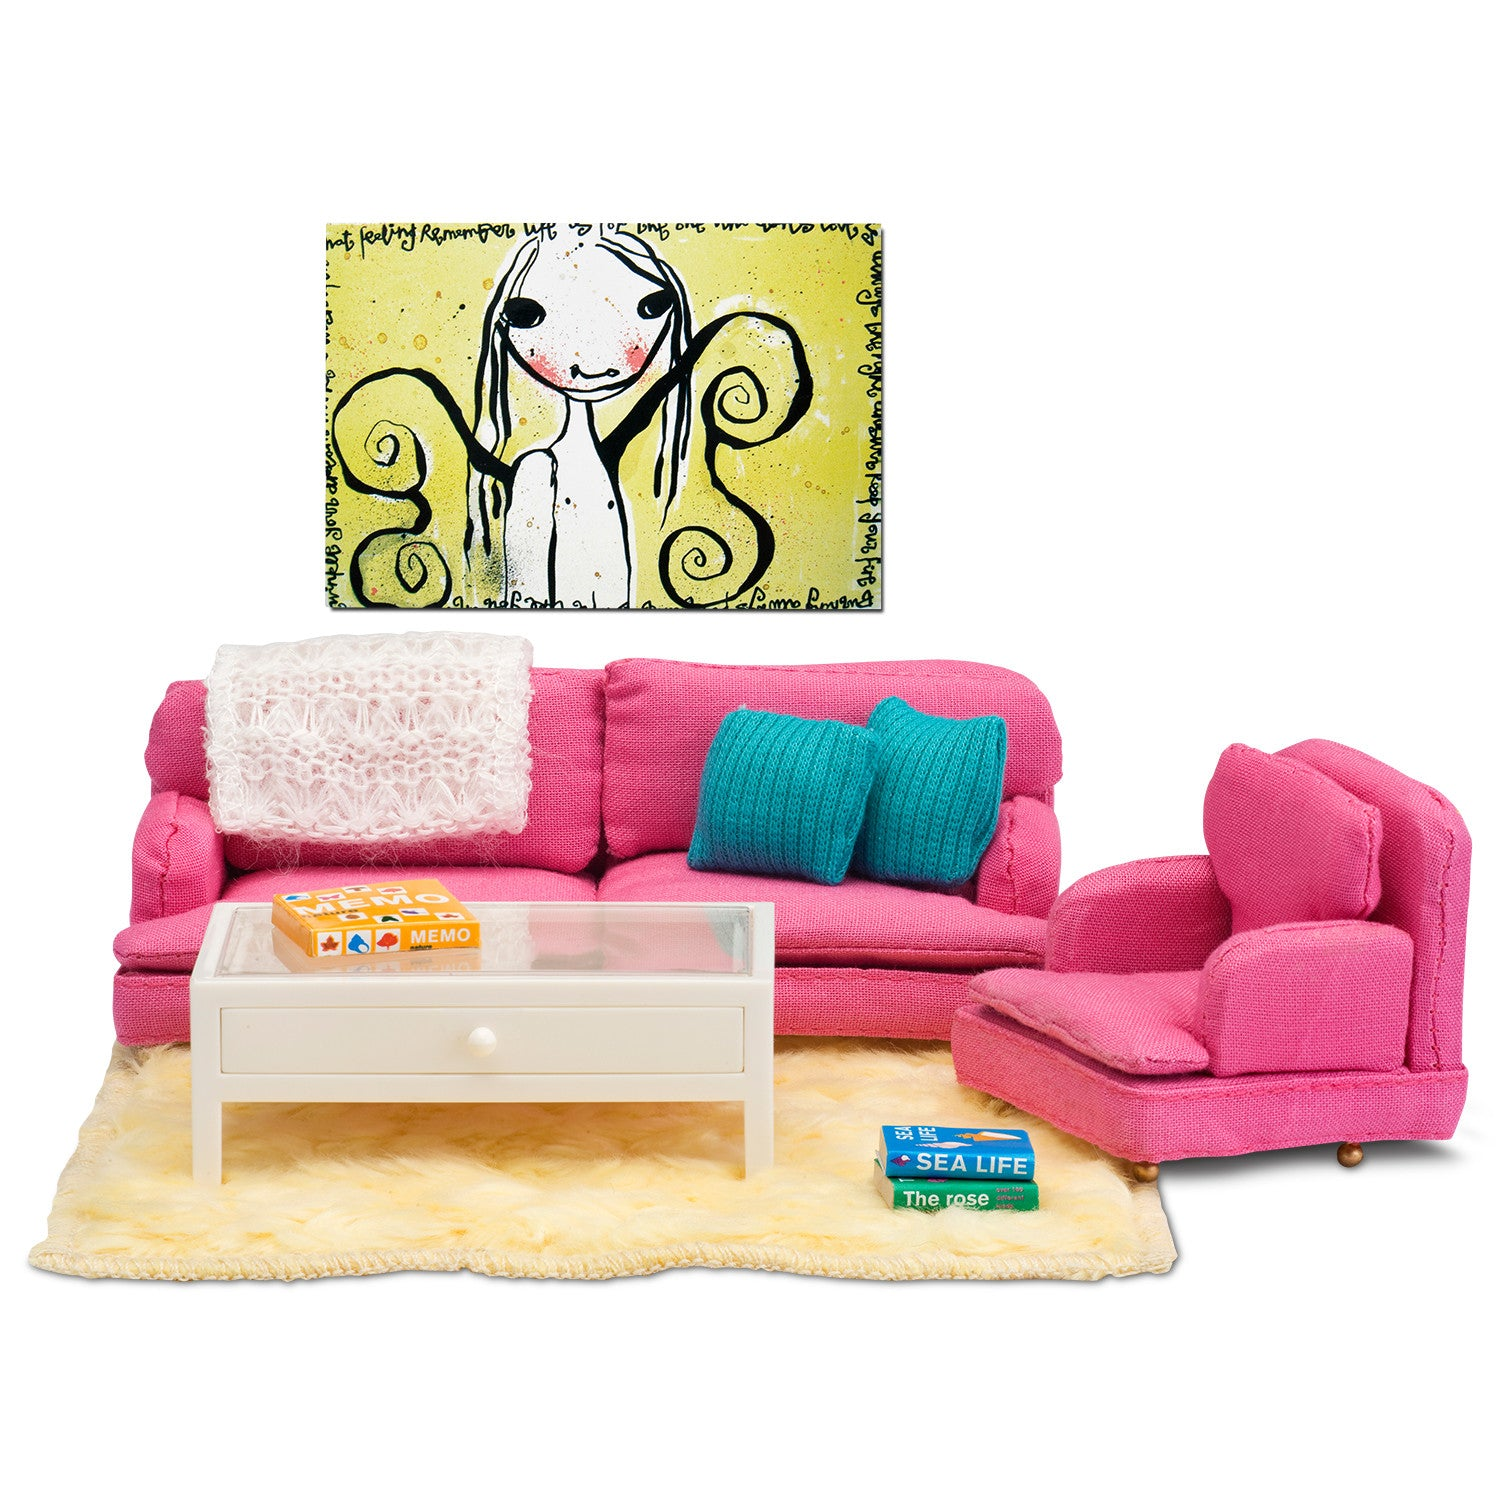 Pink Living Room Set by Smaland - Little Citizens Boutique  - 1